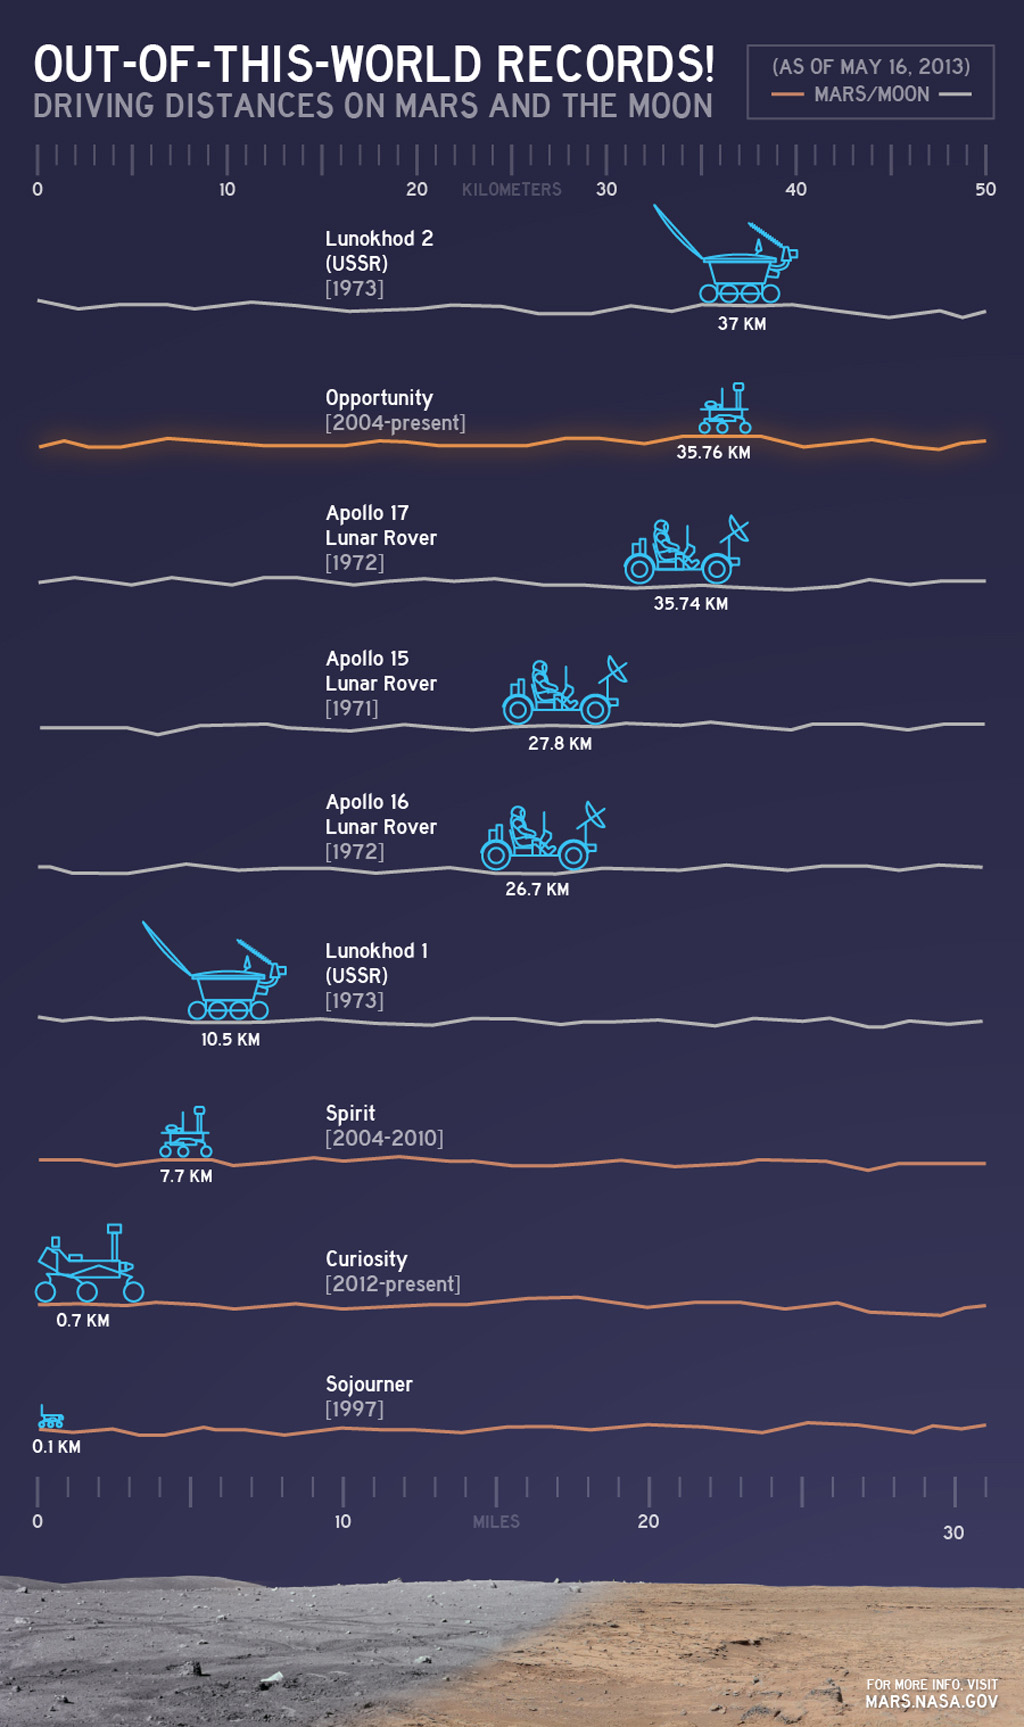 This chart illustrates comparisons among the distances driven by various wheeled vehicles on the surface of Earth's moon and Mars. Of the vehicles shown, the NASA Mars rovers Opportunity and Curiosity are still active.